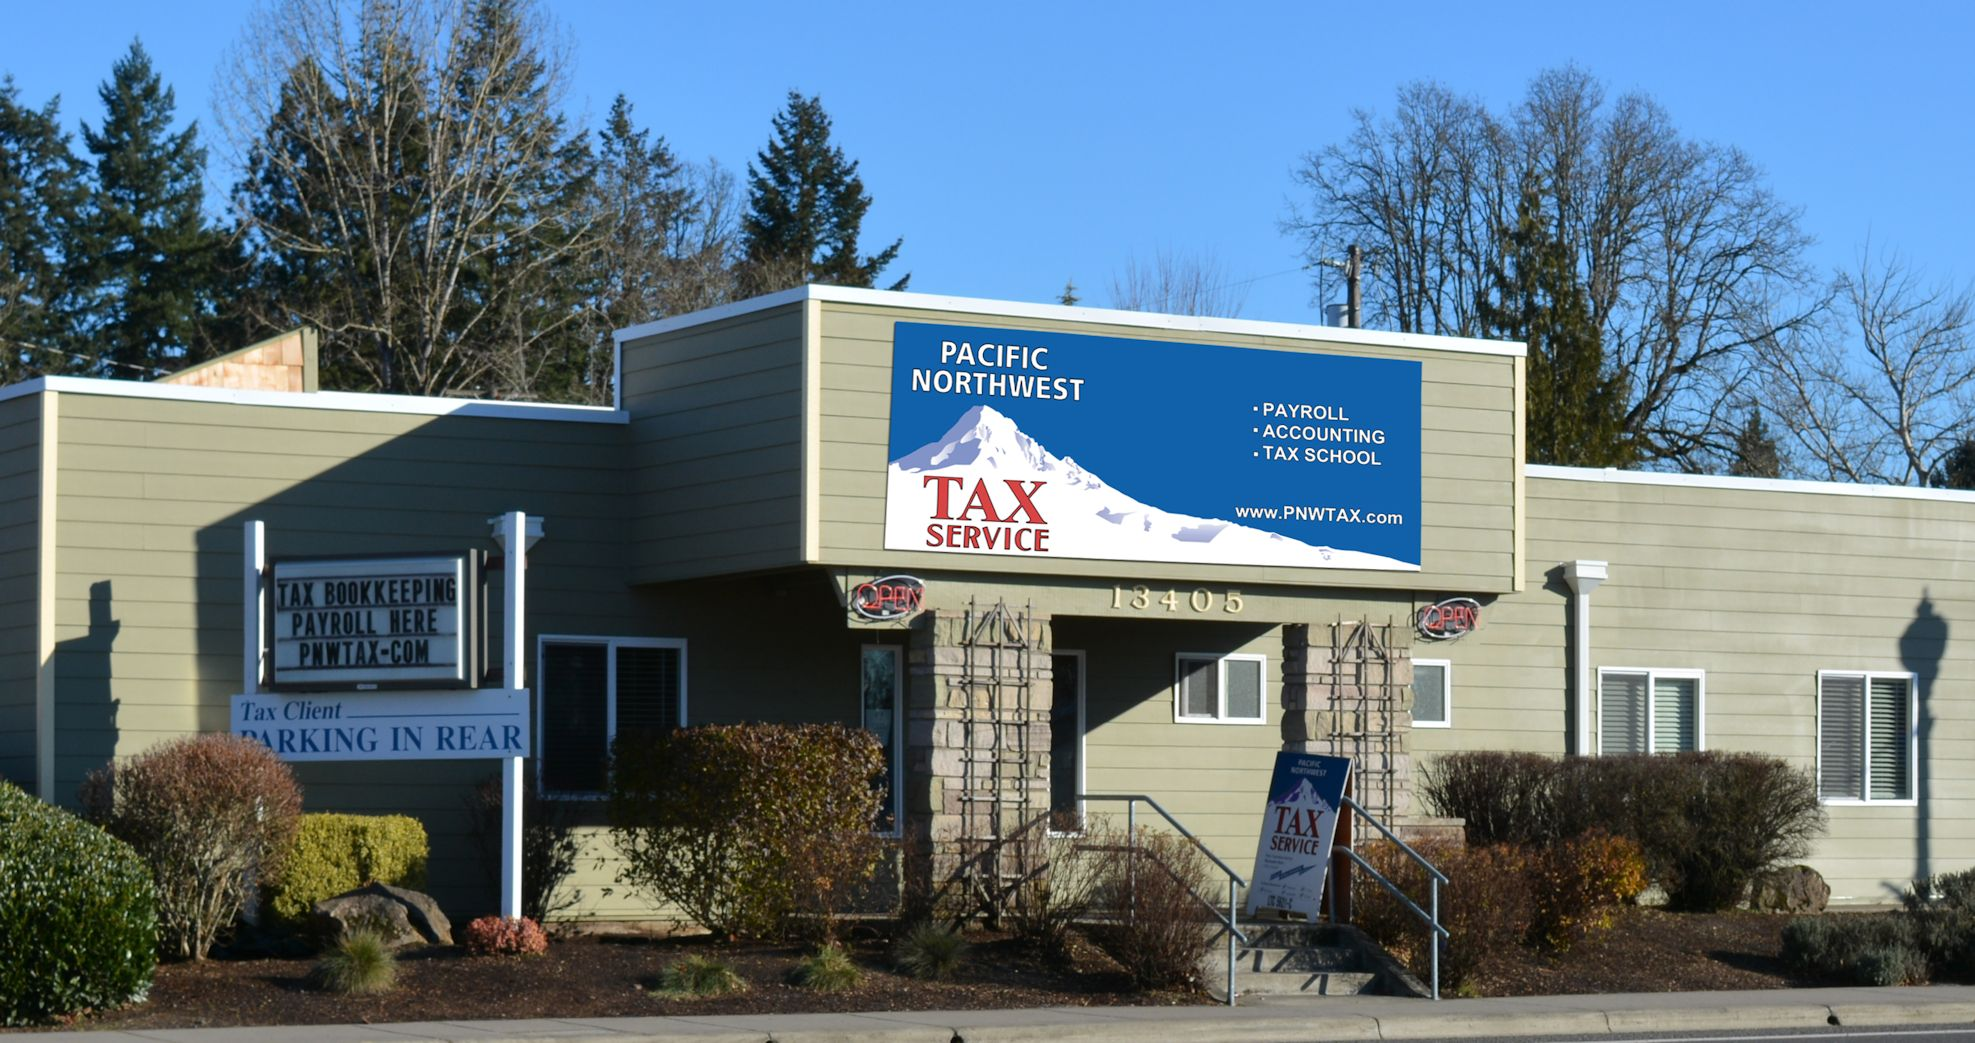 Get directions to our Westside Cedar Mill/Beaverton office - 13405 NW Cornell Rd